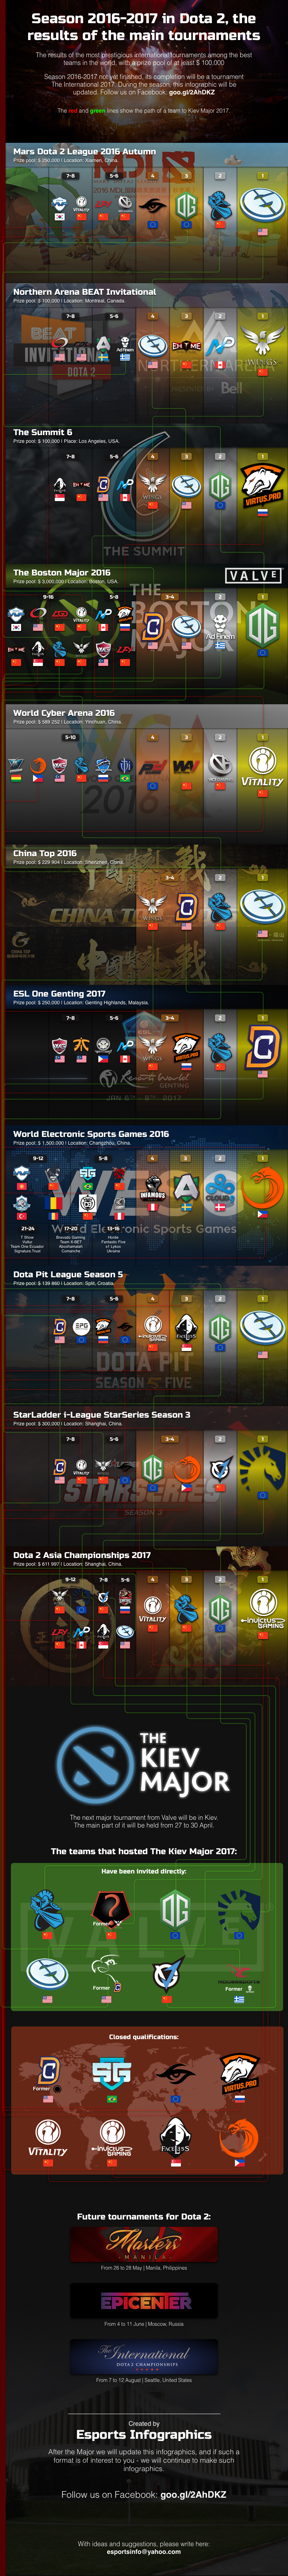 Season 2016-2017 in Dota 2, the results of the main tournaments